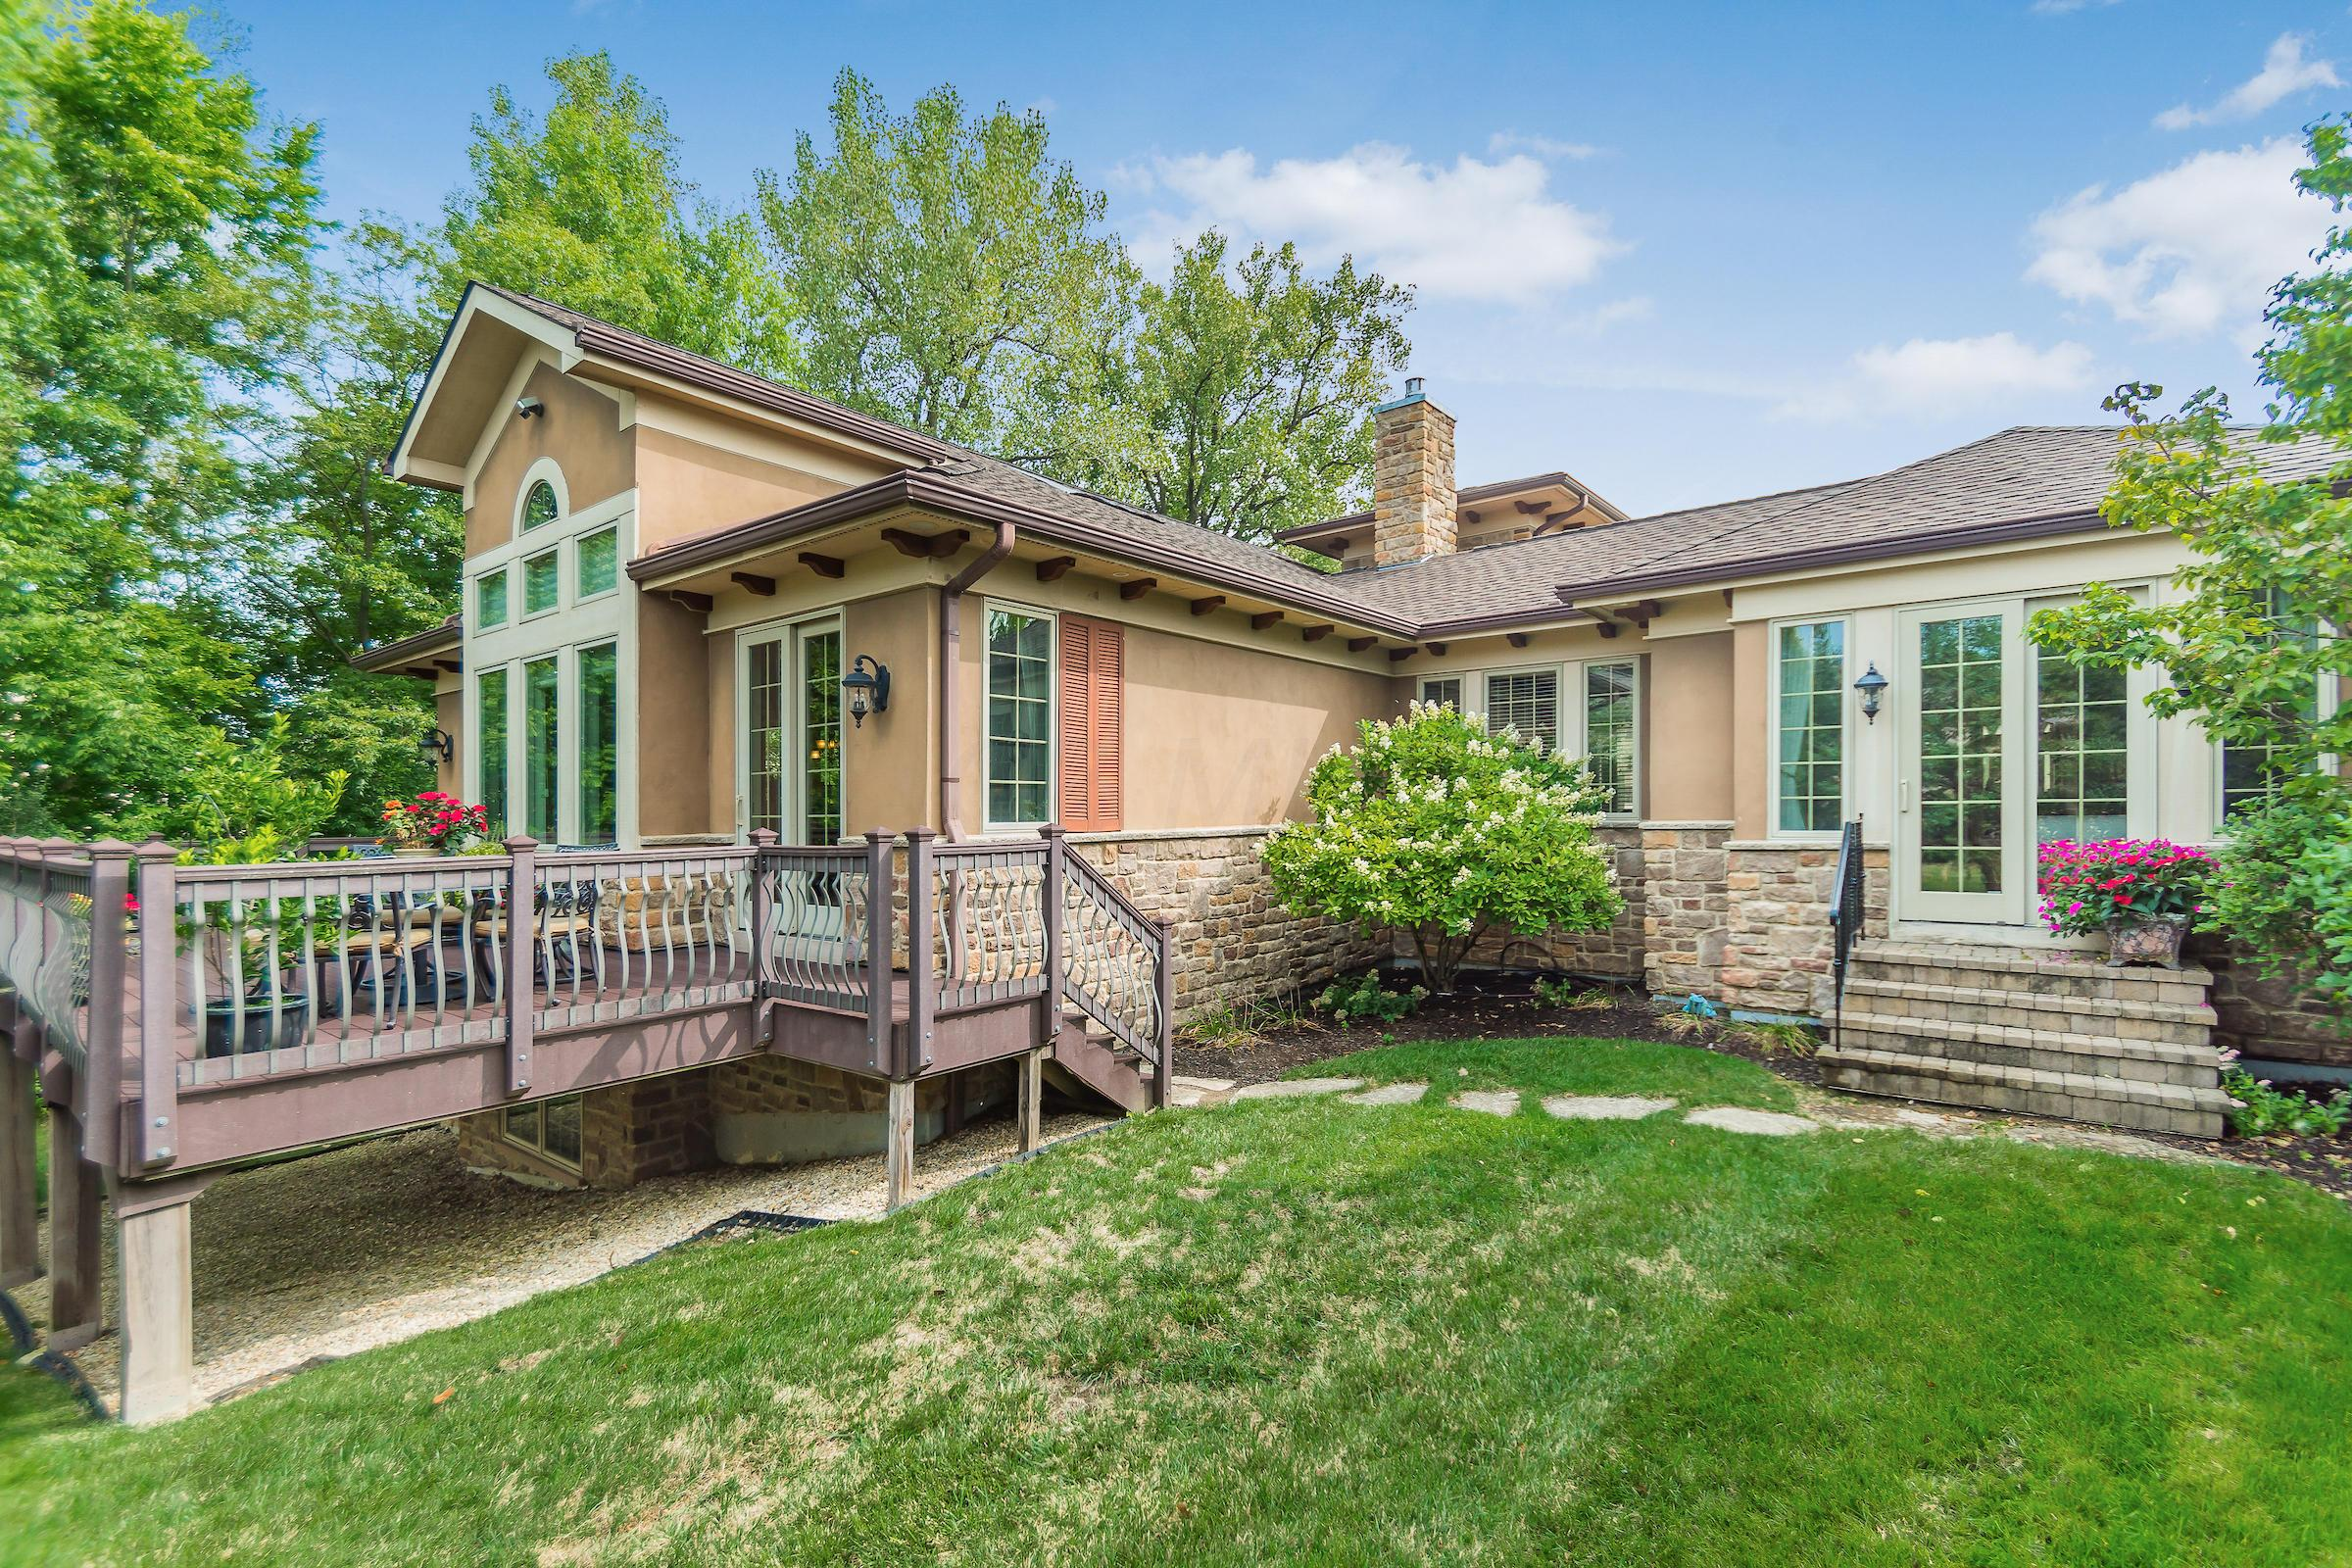 7012 Calabria Place, Dublin, Ohio 43016, 4 Bedrooms Bedrooms, ,4 BathroomsBathrooms,Residential,For Sale,Calabria,220032248